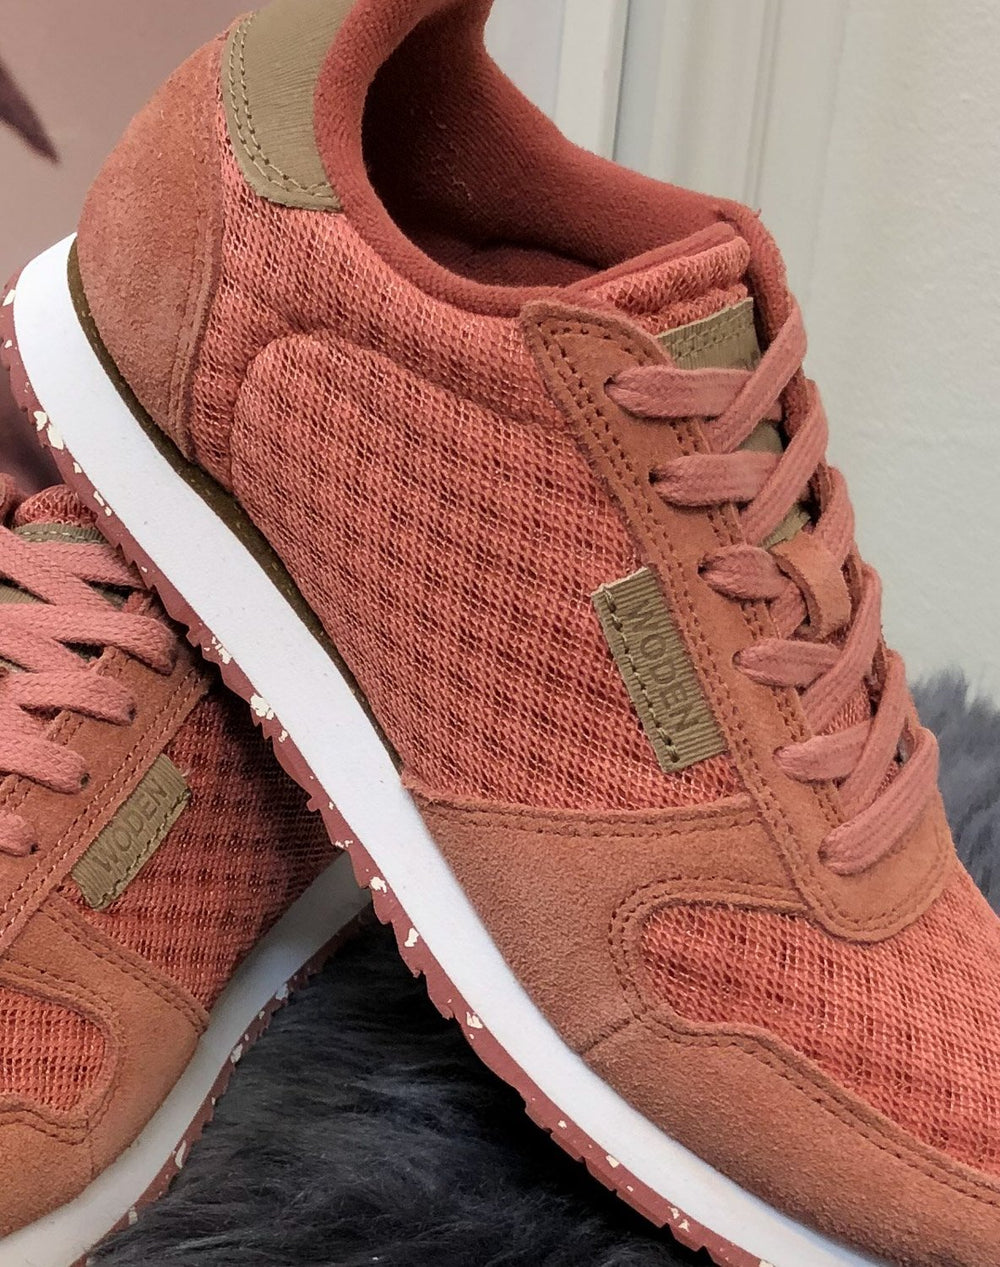 Woden Ydun suede mesh sneakers canyon rose - Online-Mode